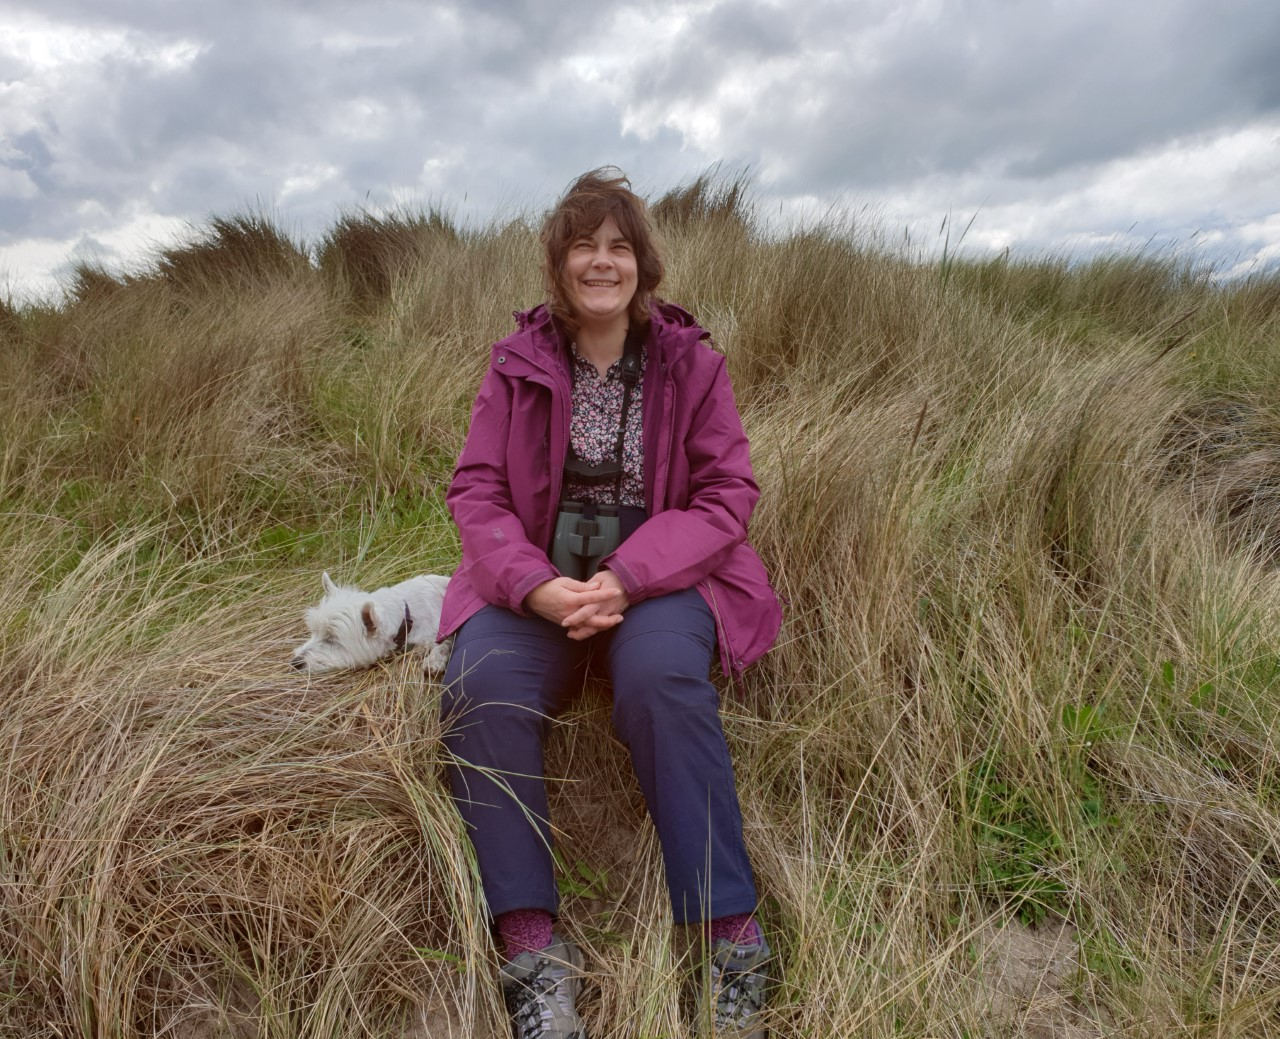 Coast Care Volunteer Mandy Fall receives joint runner up in the 2020 Marsh Christian Trust Volunteer Award for Marine Conservation.